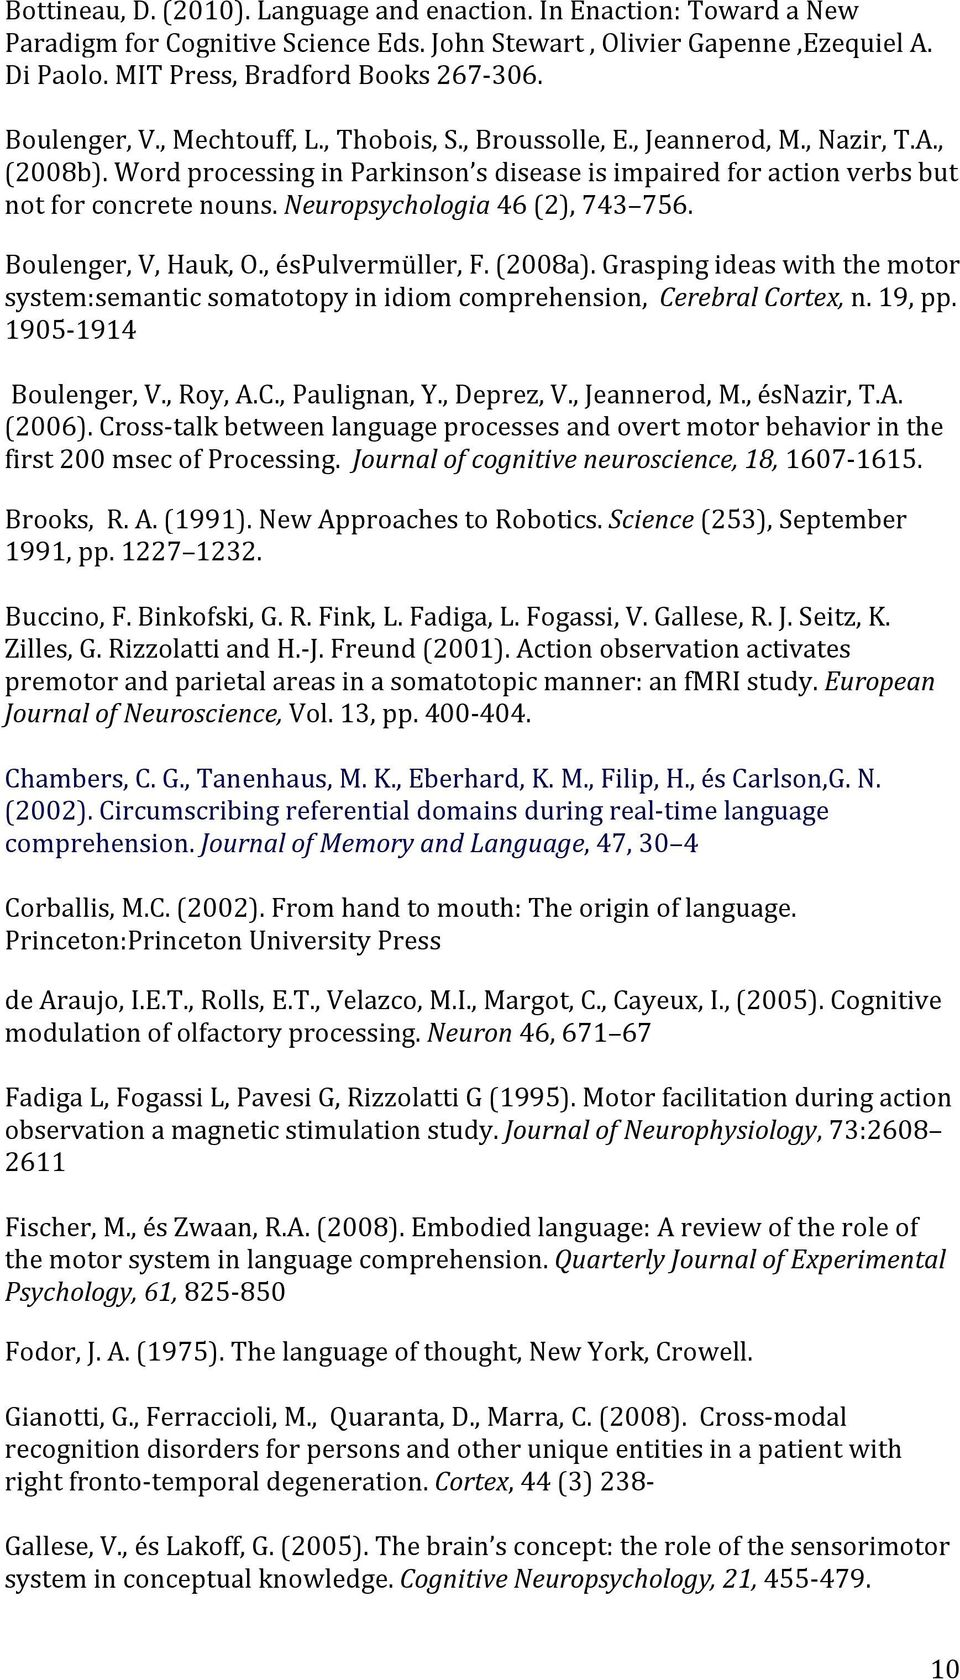 Neuropsychologia 46 (2), 743 756. Boulenger, V, Hauk, O., éspulvermüller, F. (2008a). Grasping ideas with the motor system:semantic somatotopy in idiom comprehension, Cerebral Cortex, n. 19, pp.